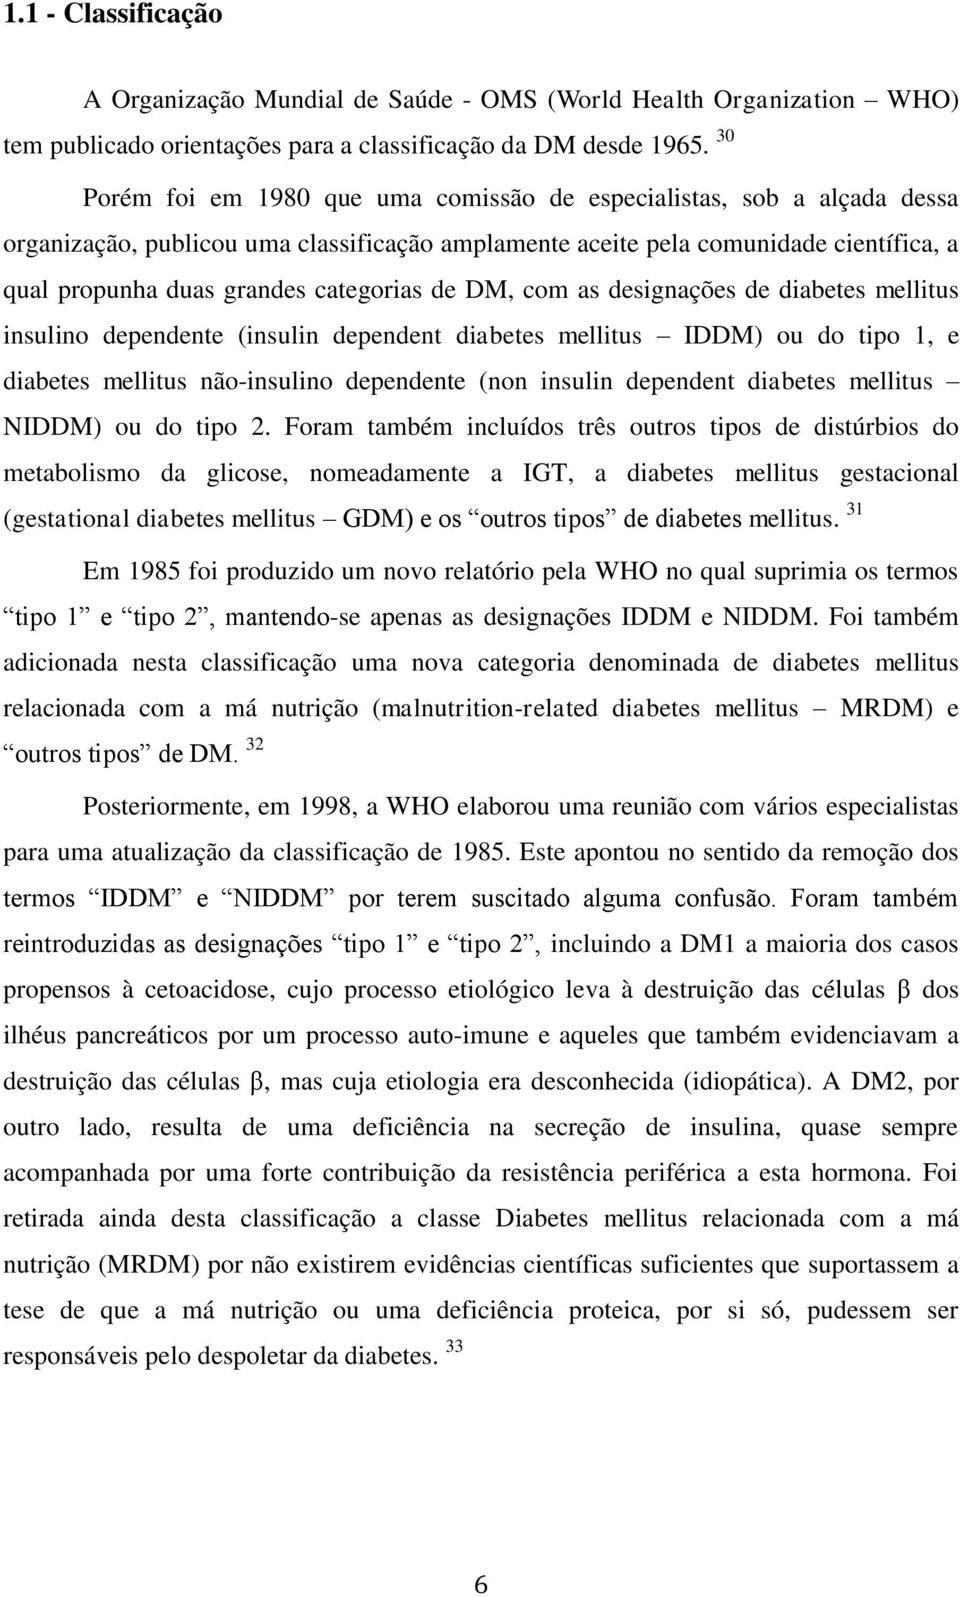 categorias de DM, com as designações de diabetes mellitus insulino dependente (insulin dependent diabetes mellitus IDDM) ou do tipo 1, e diabetes mellitus não-insulino dependente (non insulin